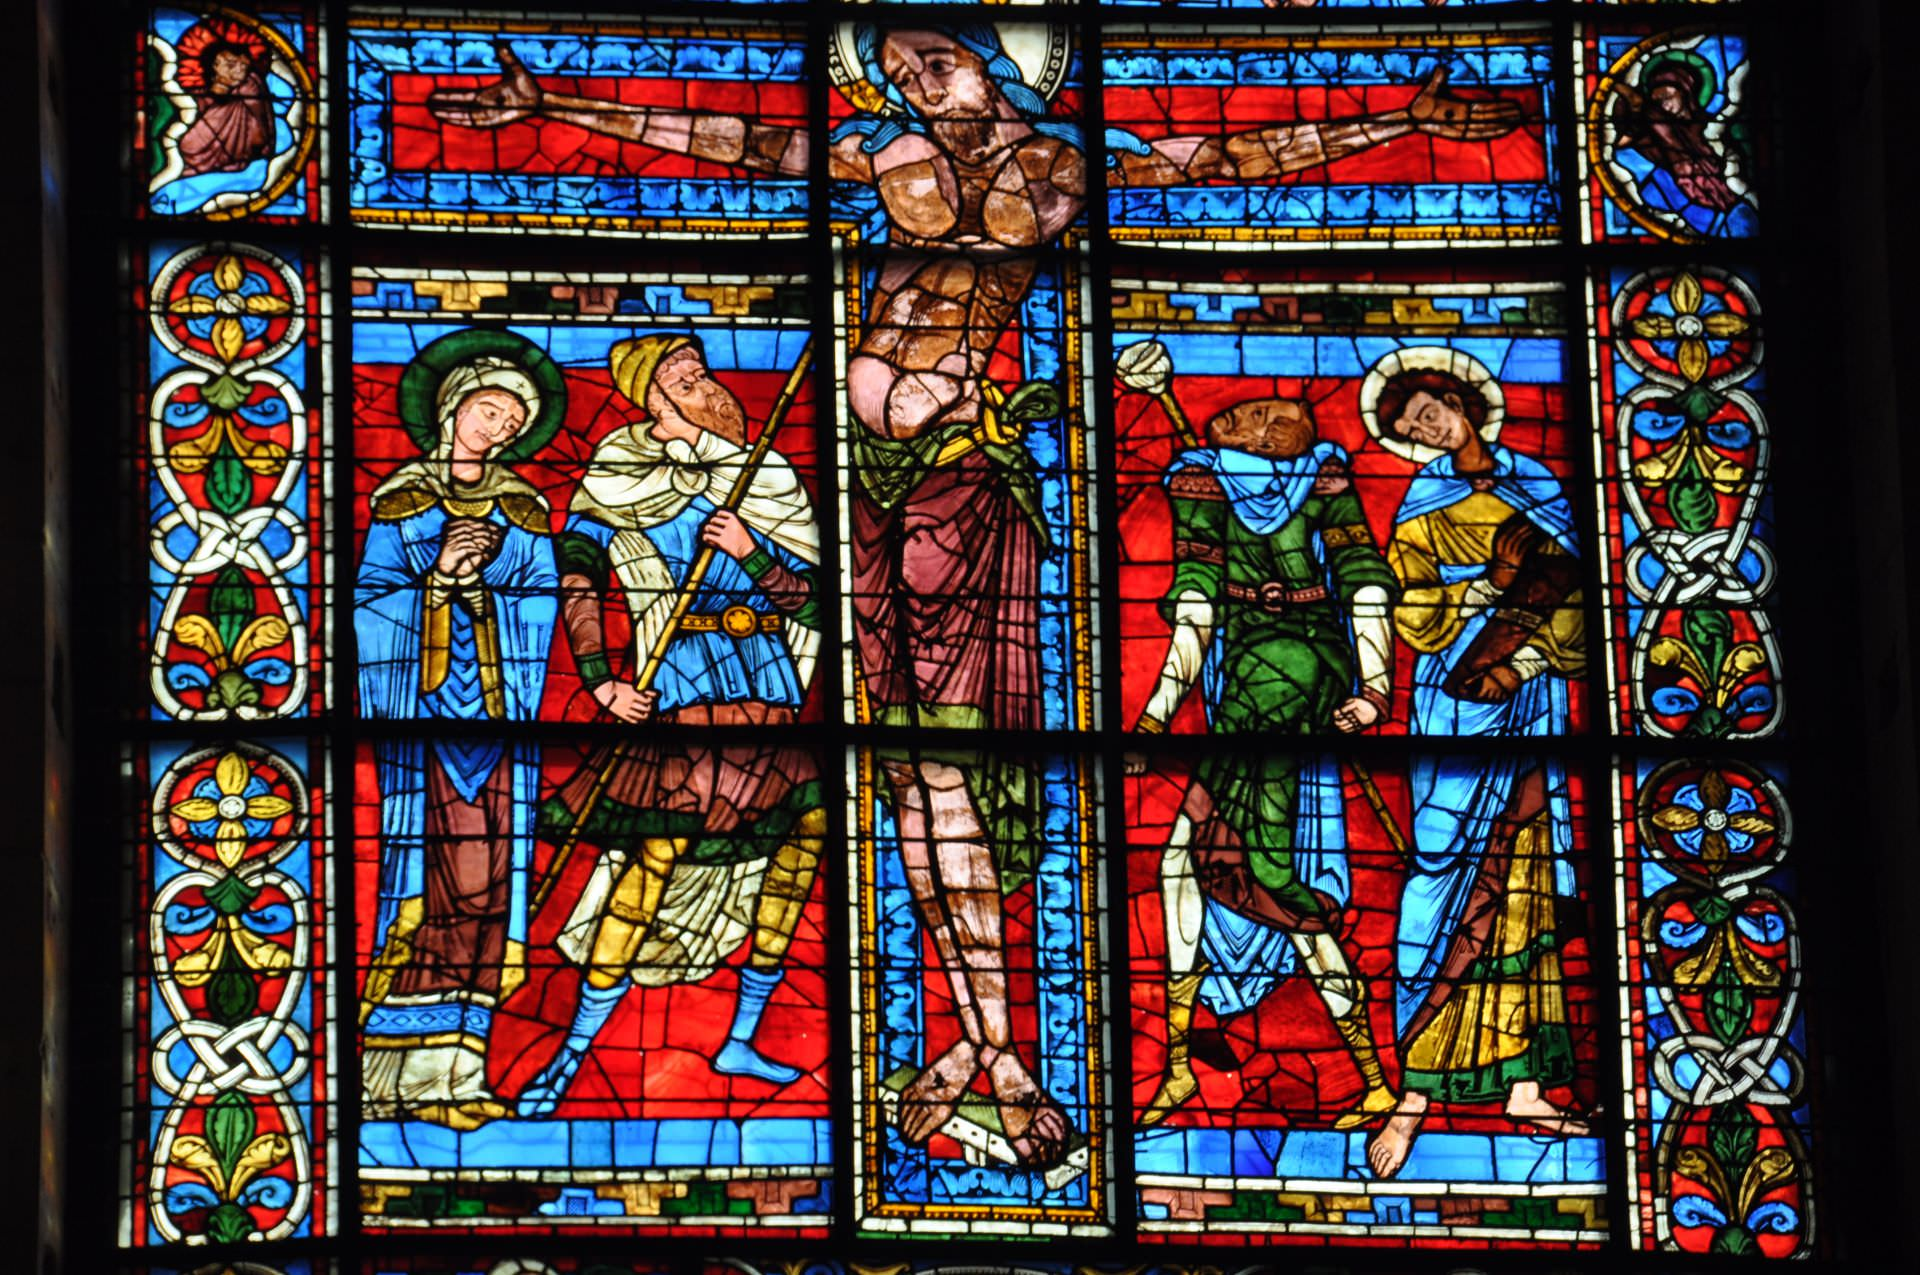 window, stained glass, colors, glass, moment of crucifixion